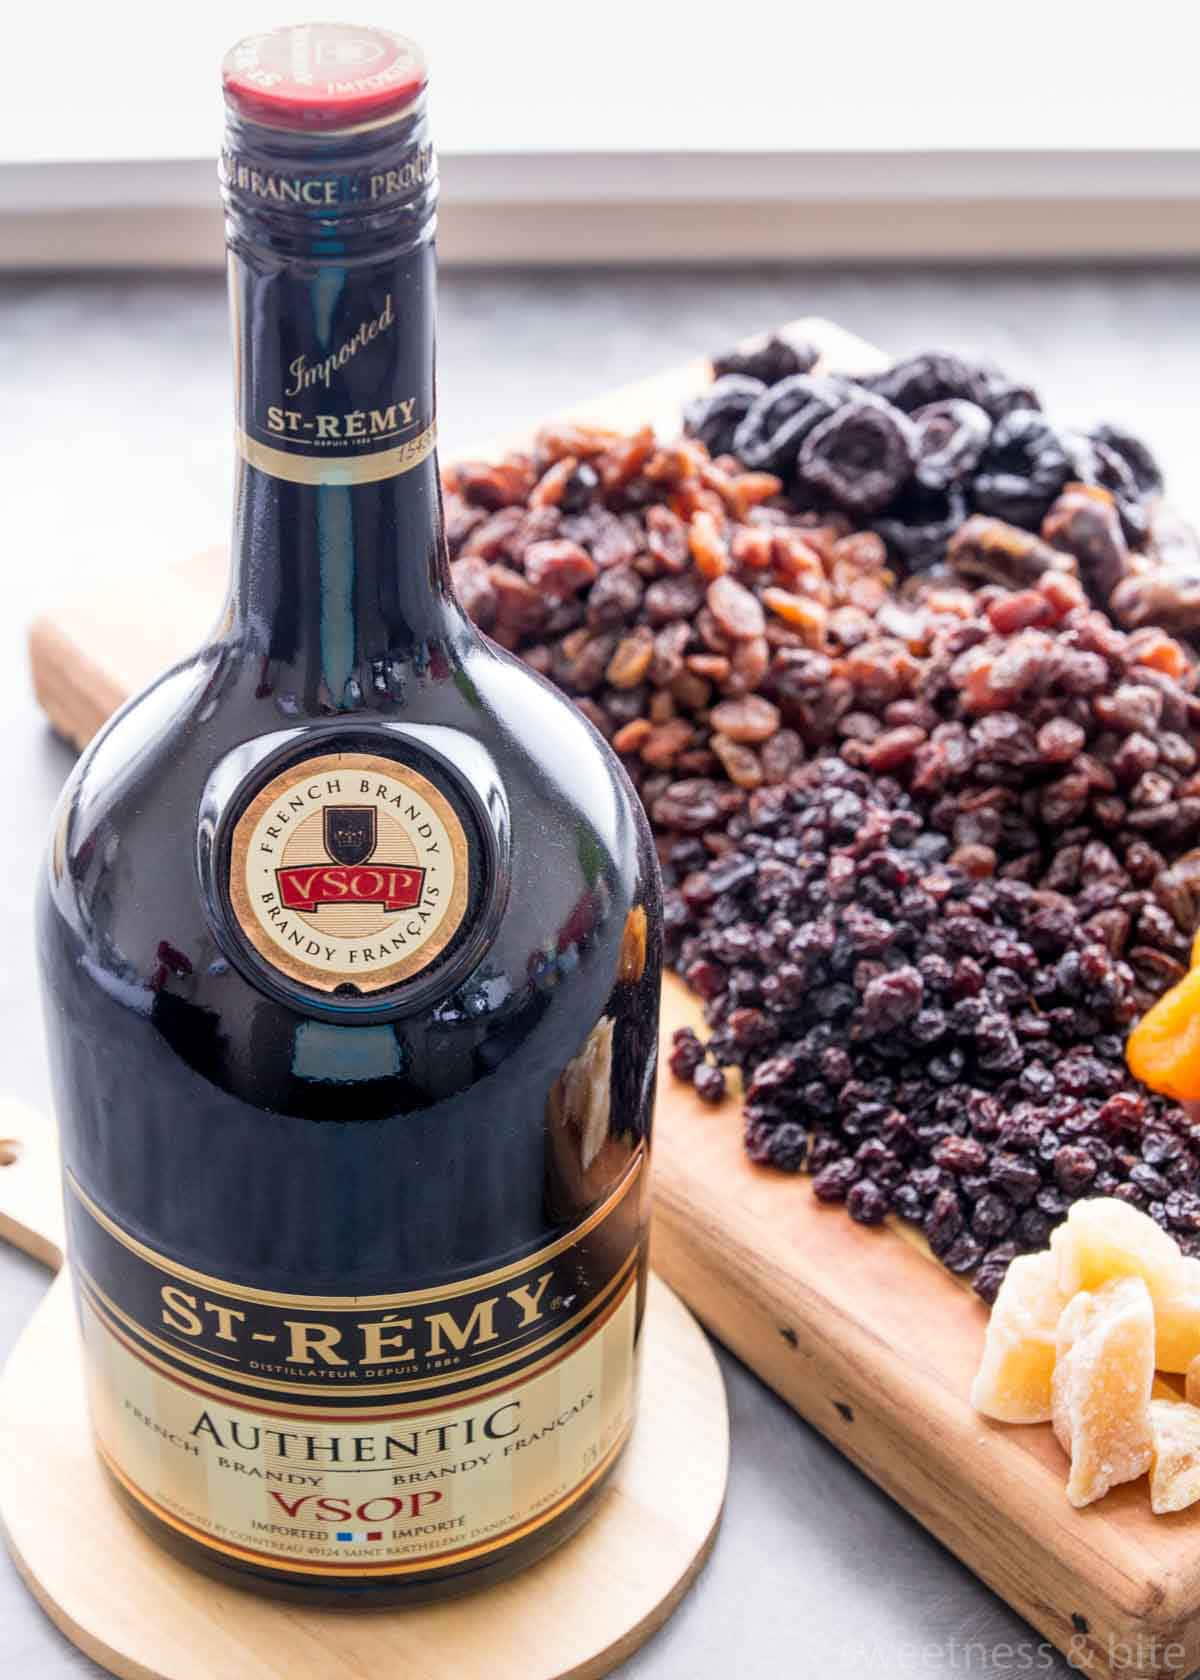 A bottle of St Remy brandy with dried fruits in the background.